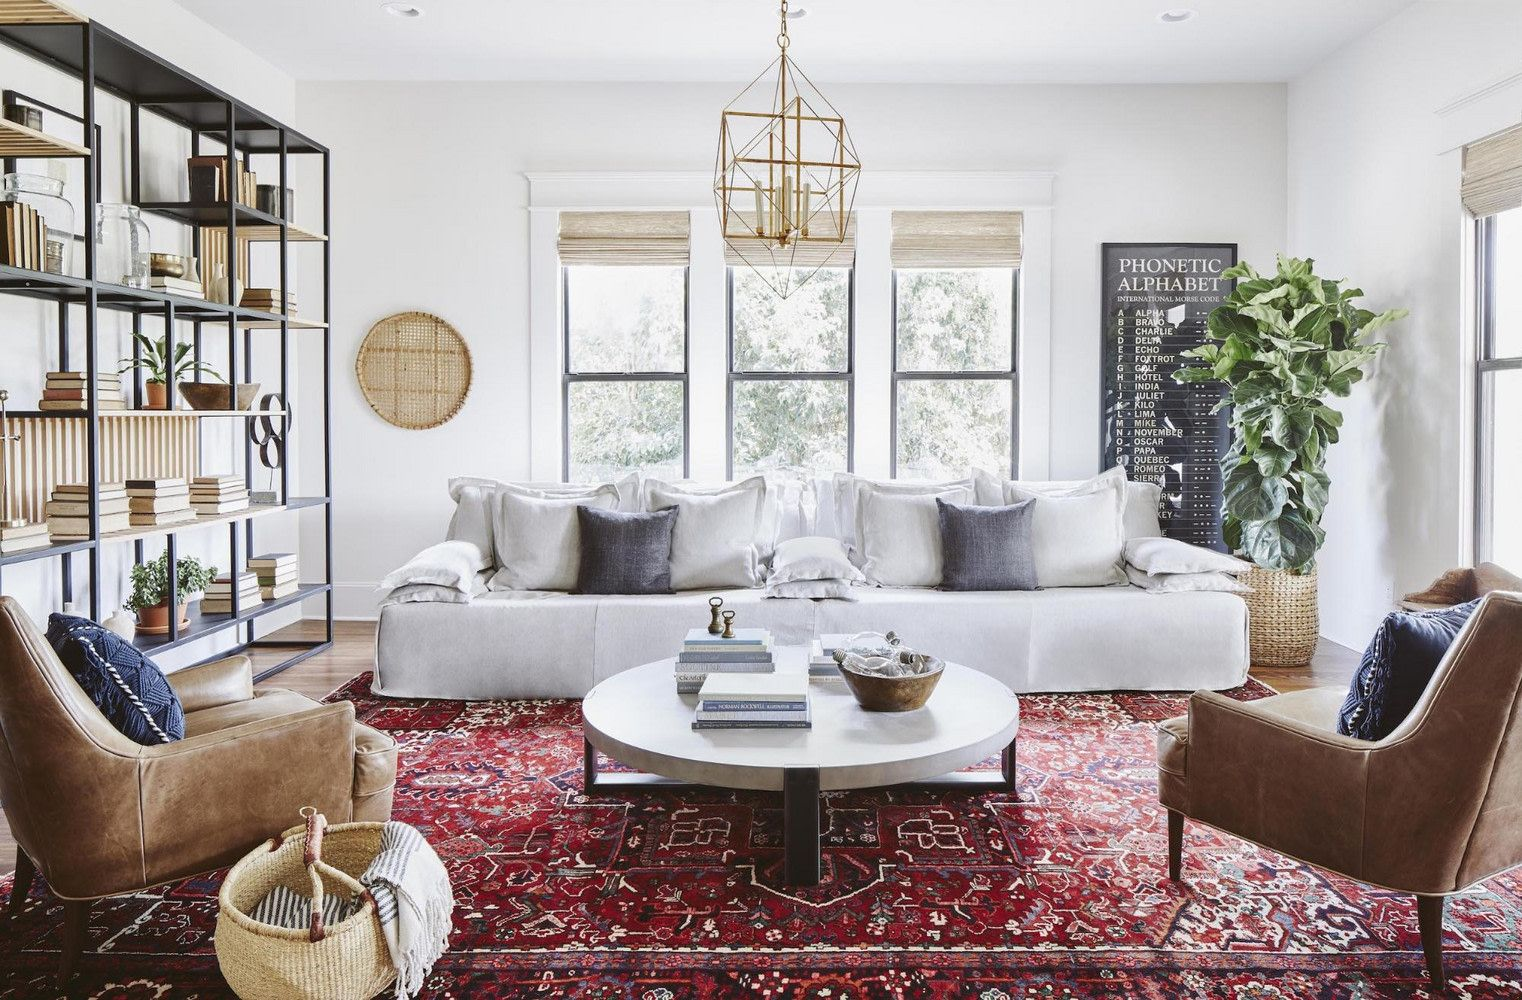 joanna gaines decor advice with images  joanna gaines